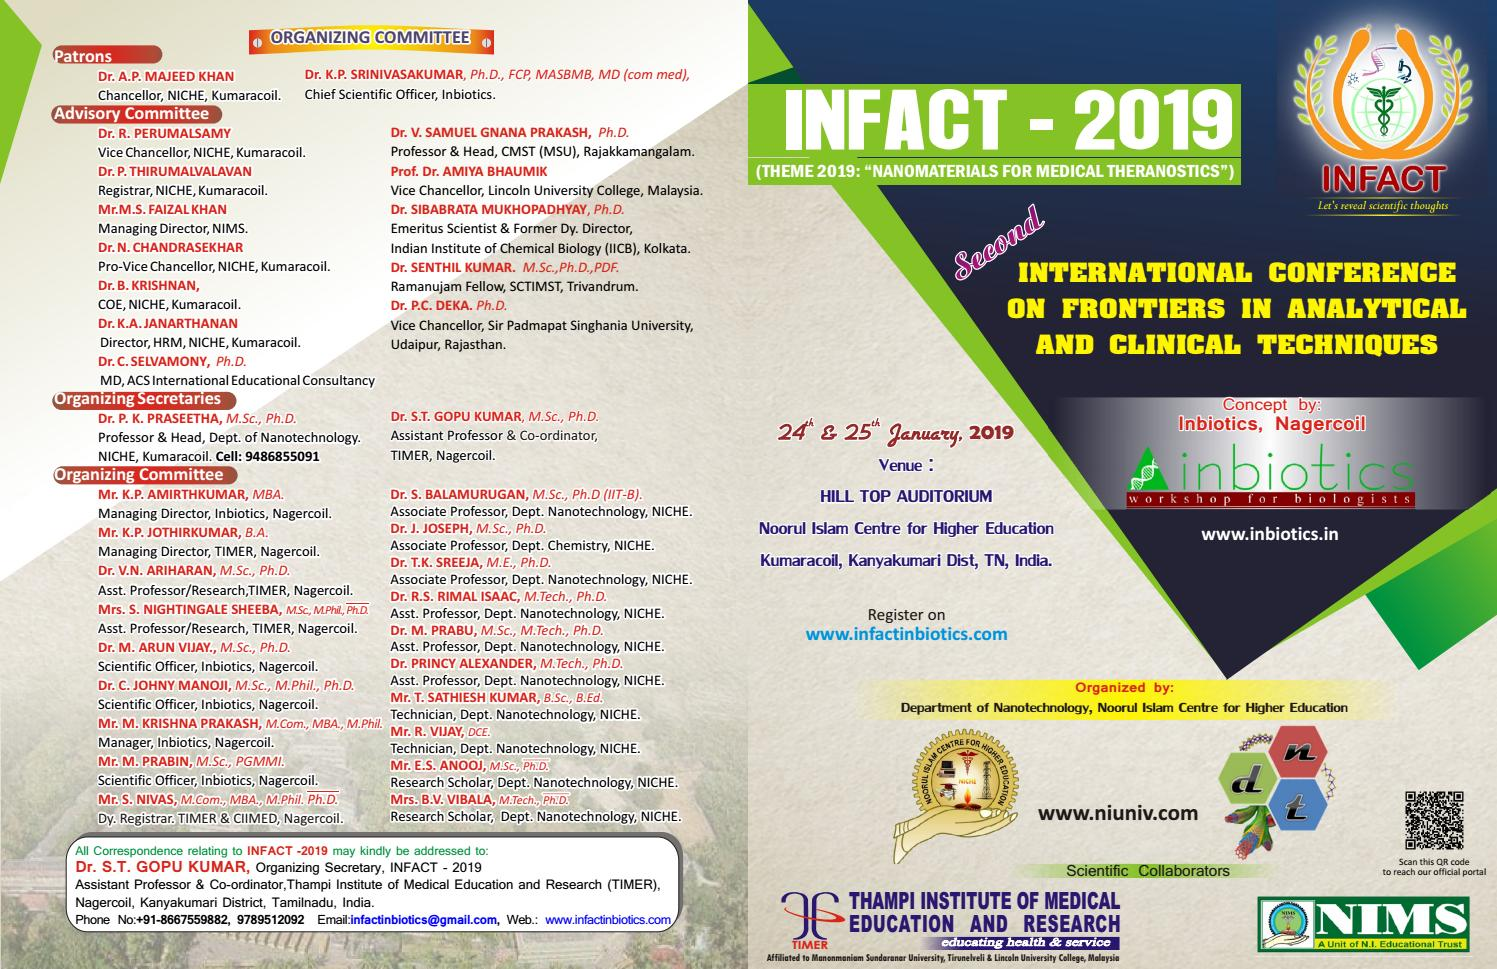 International Conference On Frontiers In Analytical & Clinical